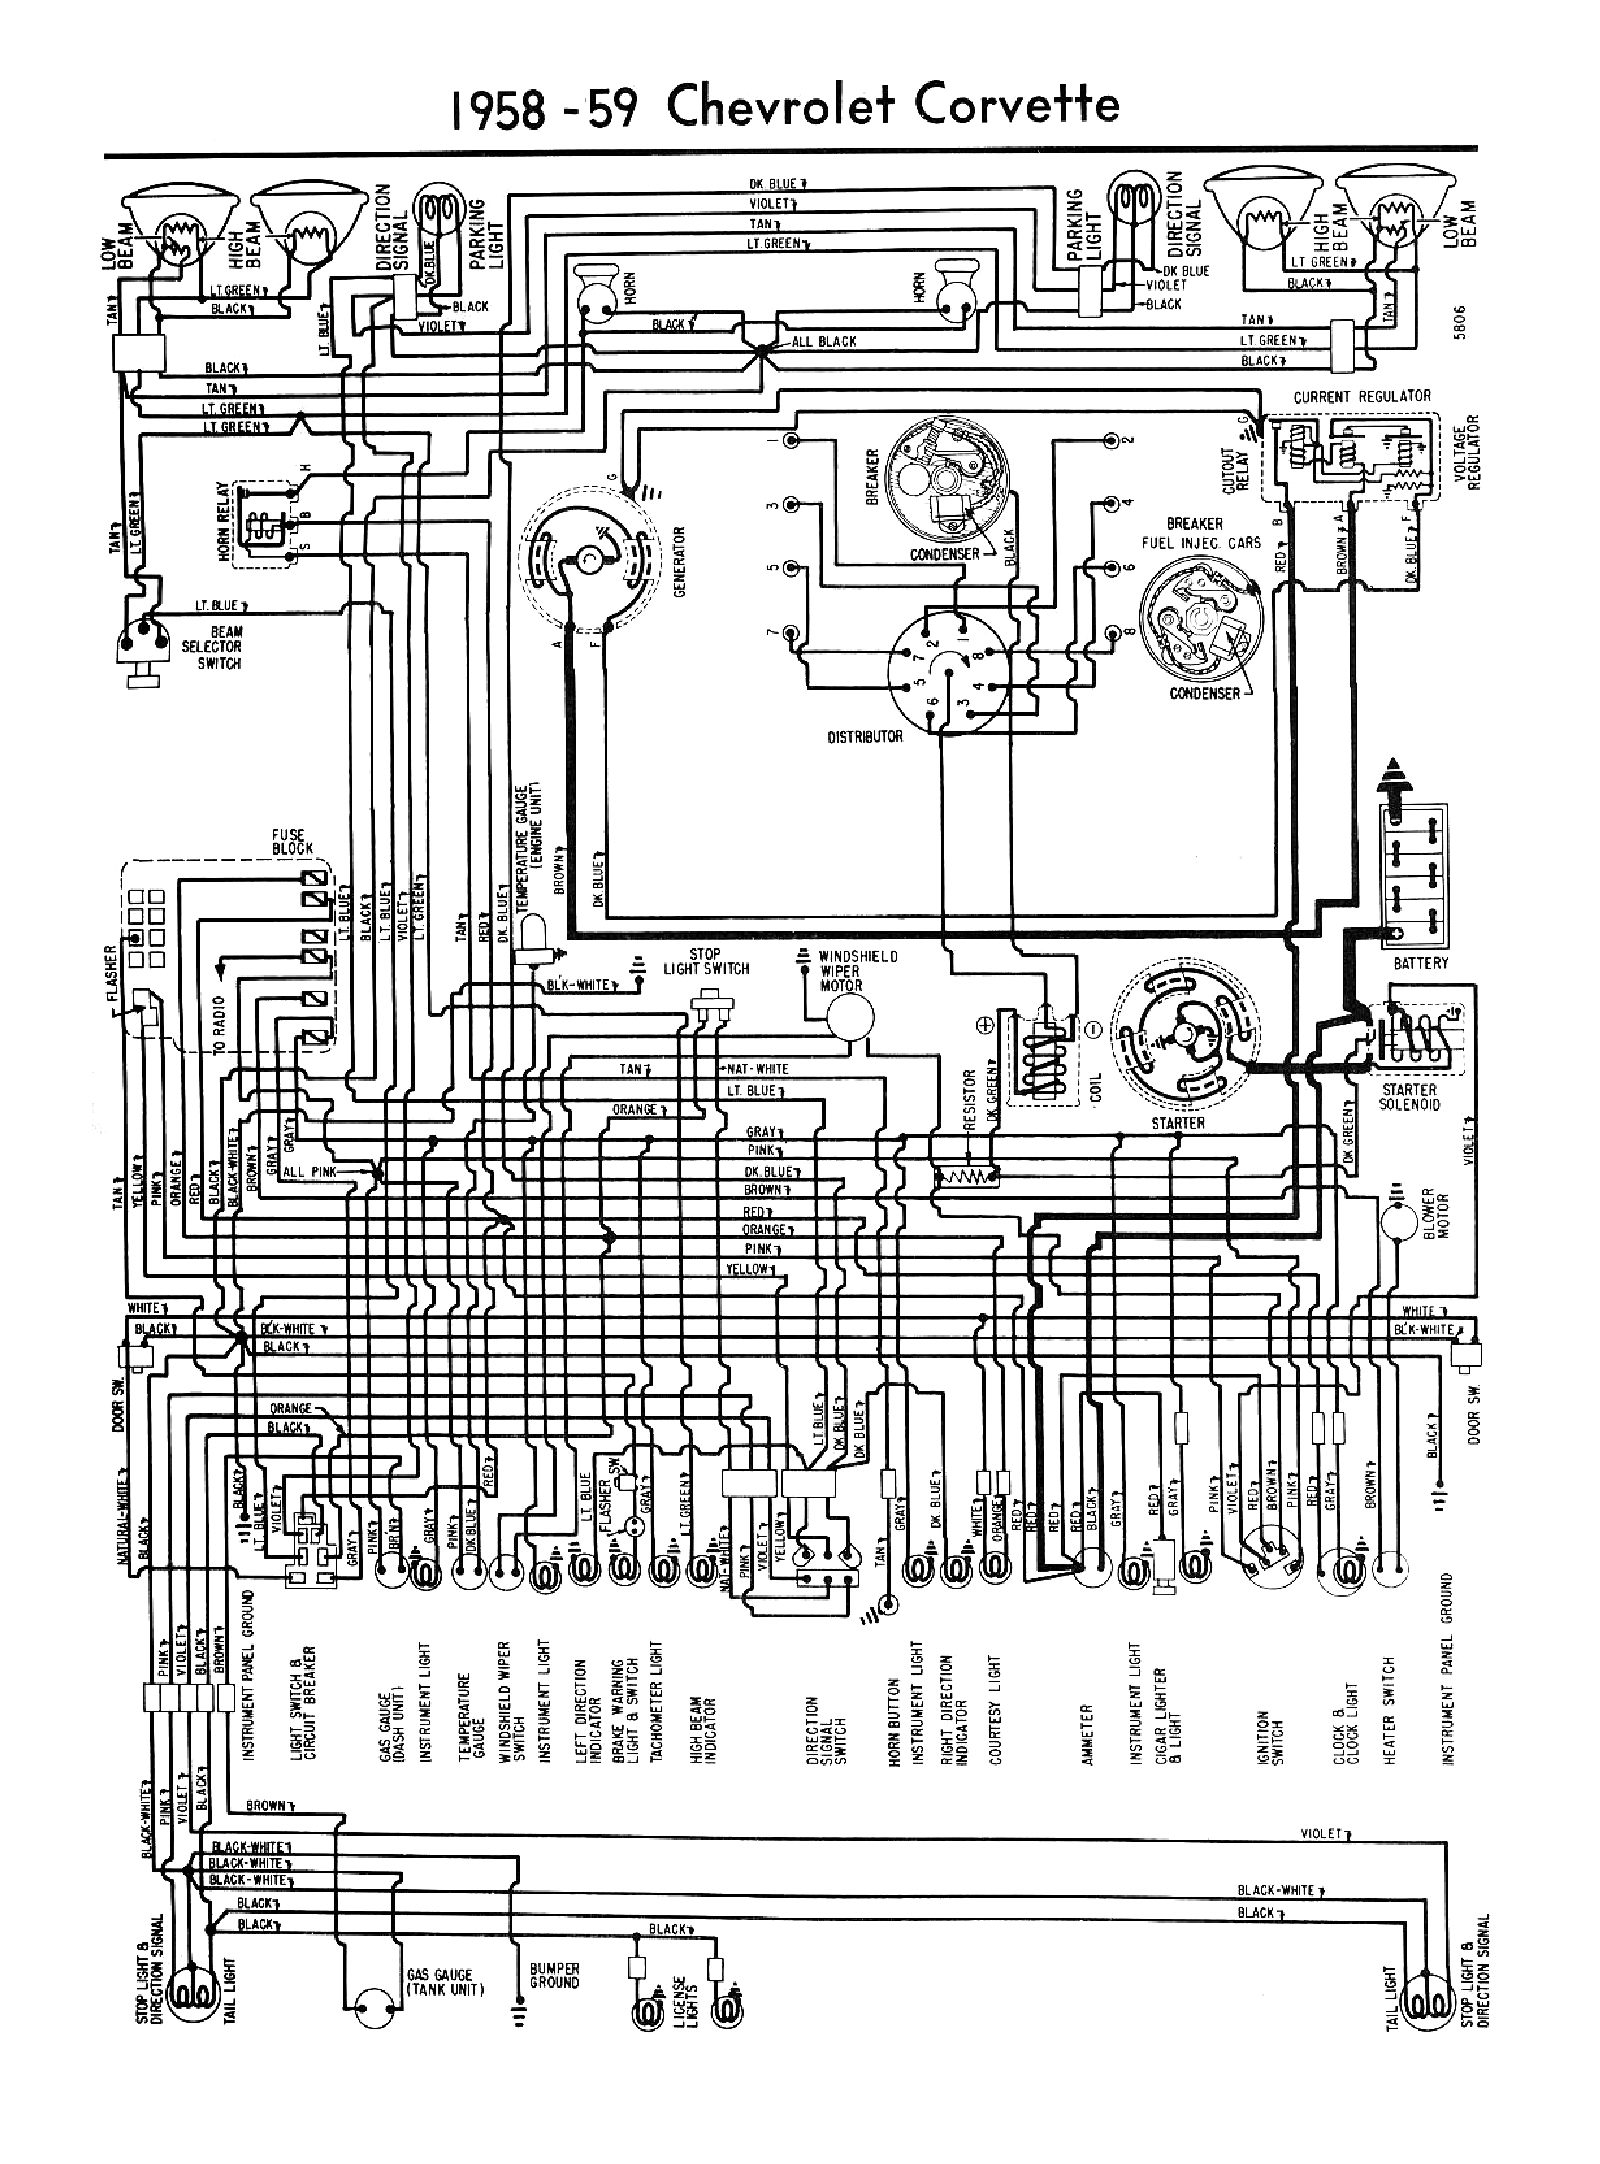 1966 Corvette Fuse Panel Diagram | Wiring Diagram on